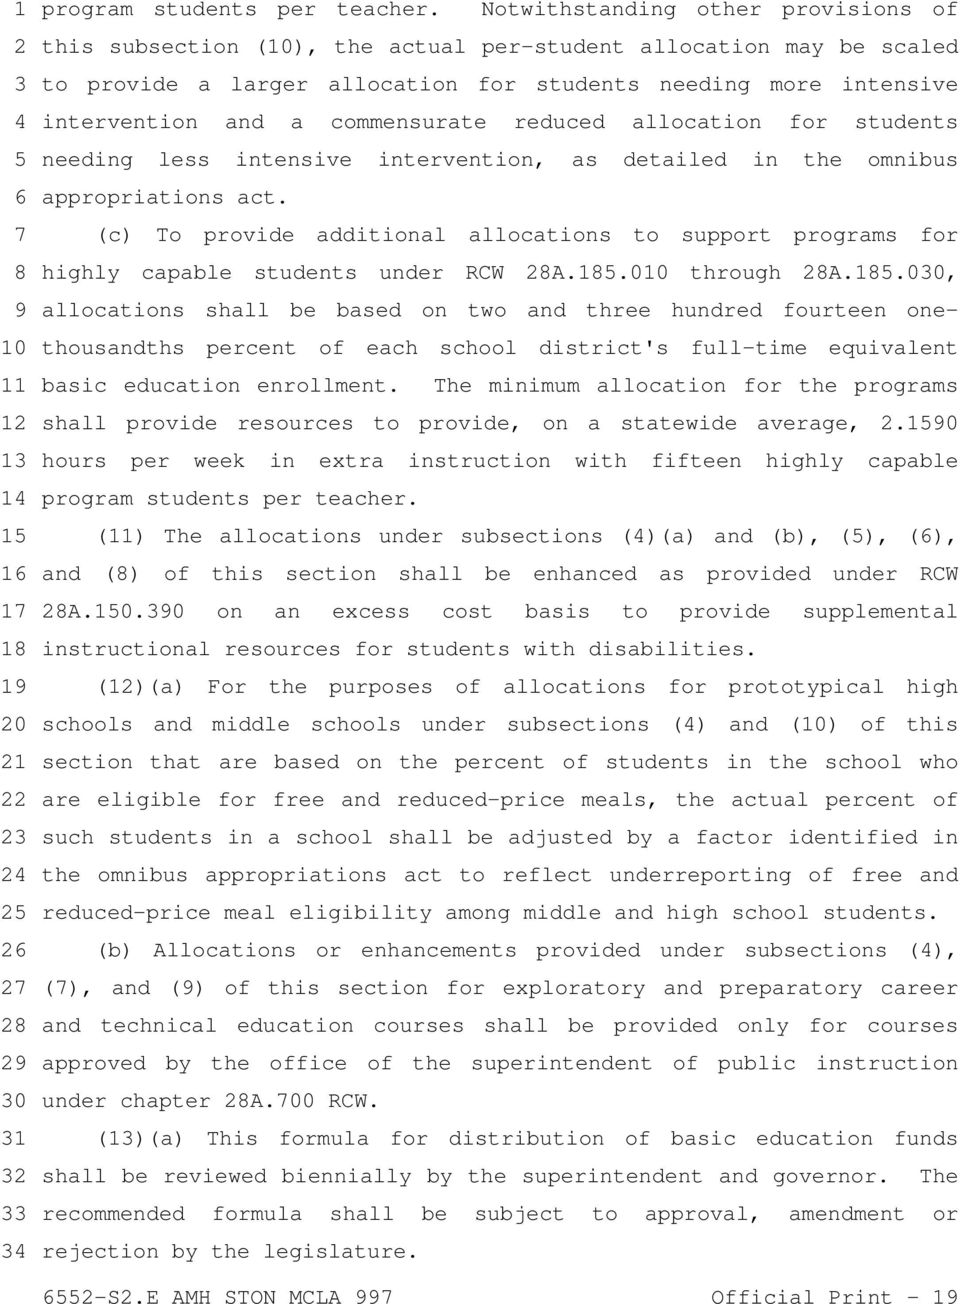 commensurate reduced allocation for students needing less intensive intervention, as detailed in the omnibus appropriations act.